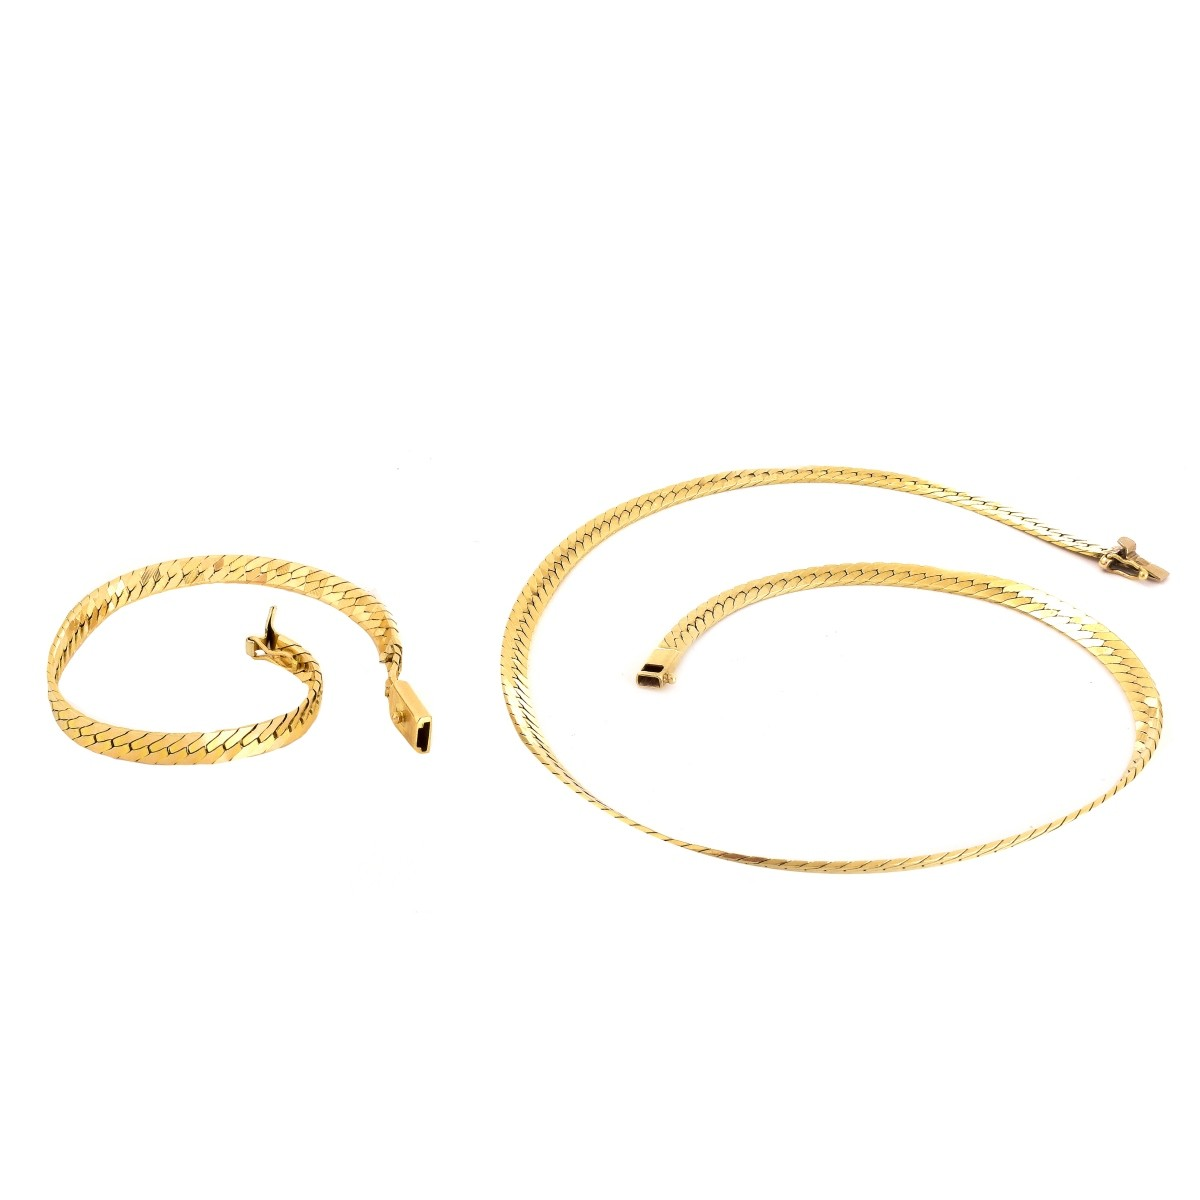 14K Gold Herringbone Link Necklace and Bracelet